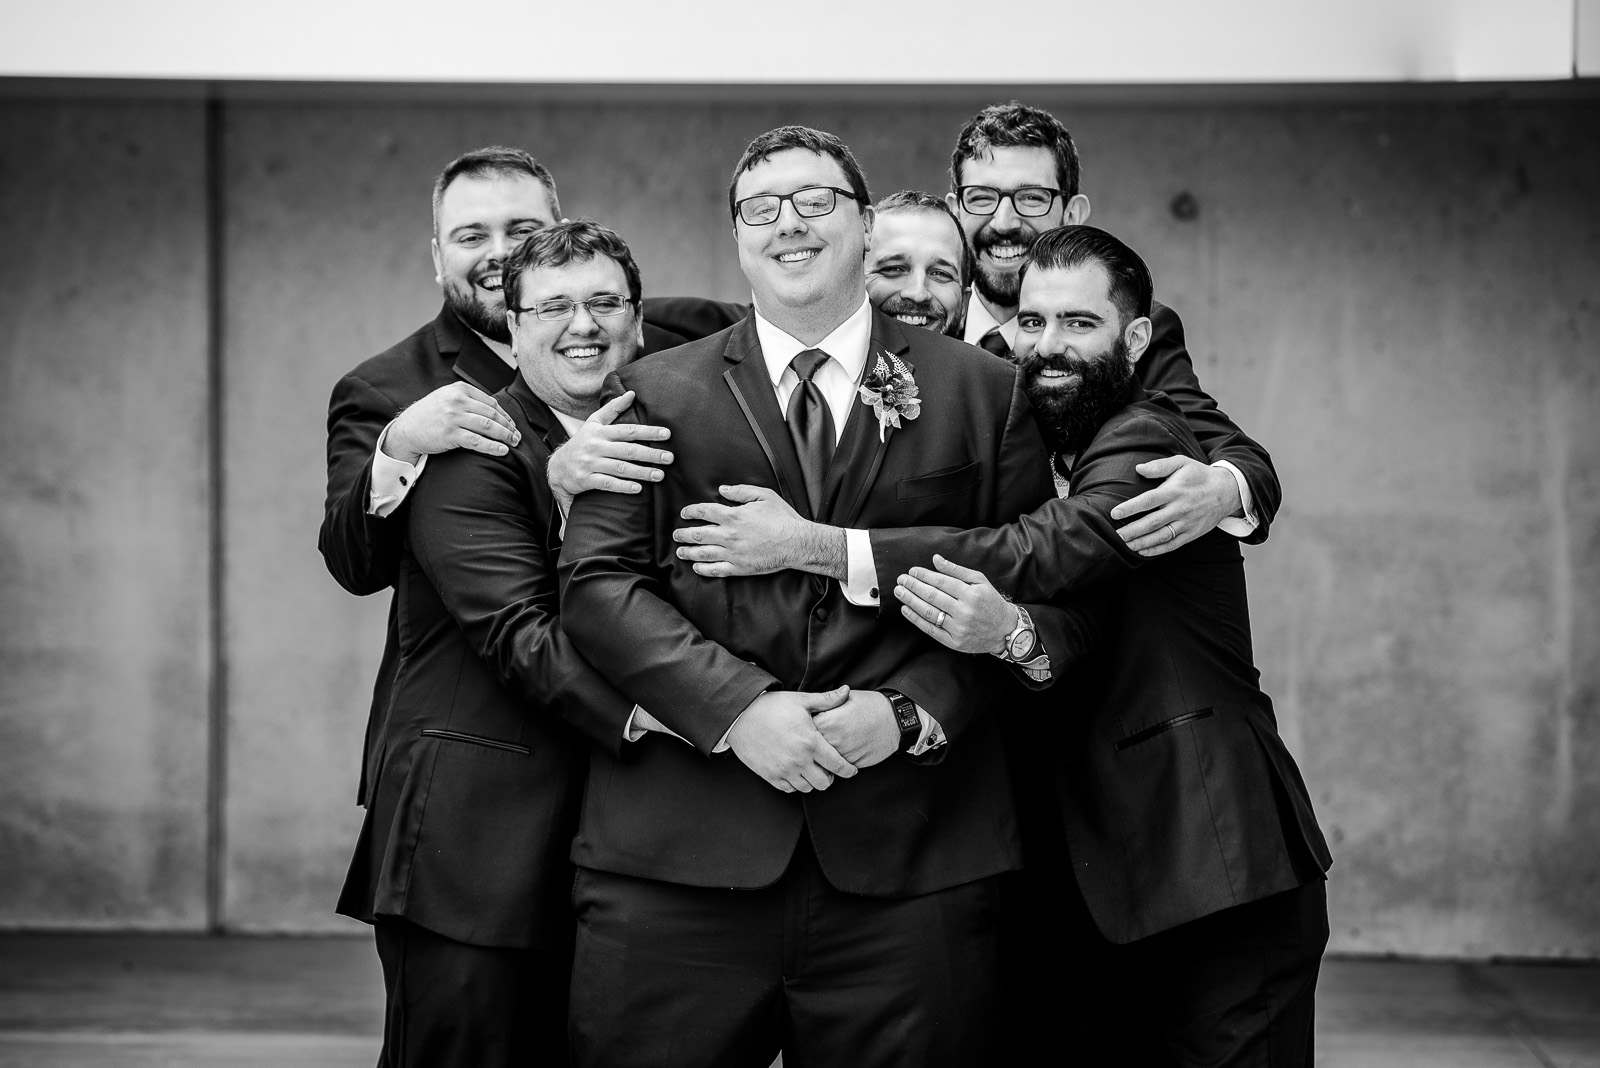 Eric_and_Christy_Photography_Blog_Wedding_Karen_Nick-17